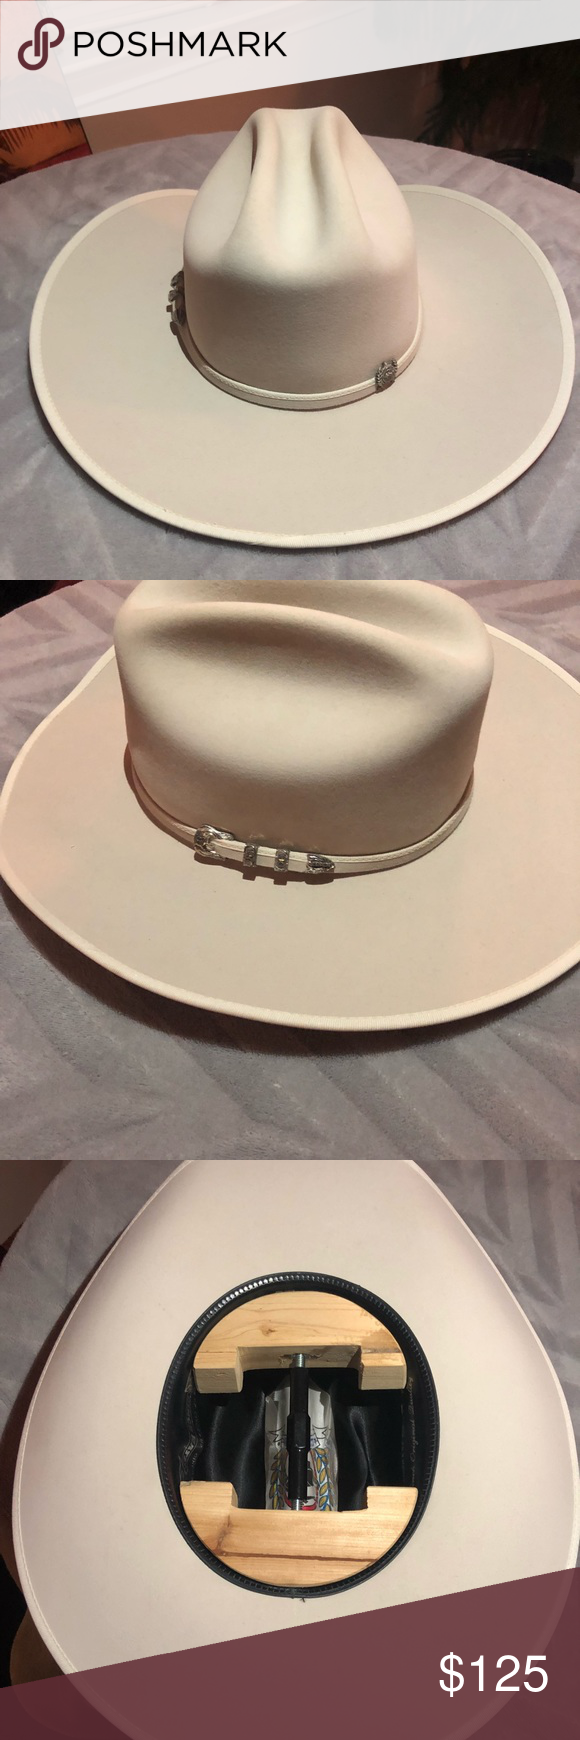 c1a7fd3f8ffd9 Cinch up Felt Cowboy Hat Rare Rare hat to find Brand new Size 7- 1 4 Great  deal on this hat Cinch Accessories Hats